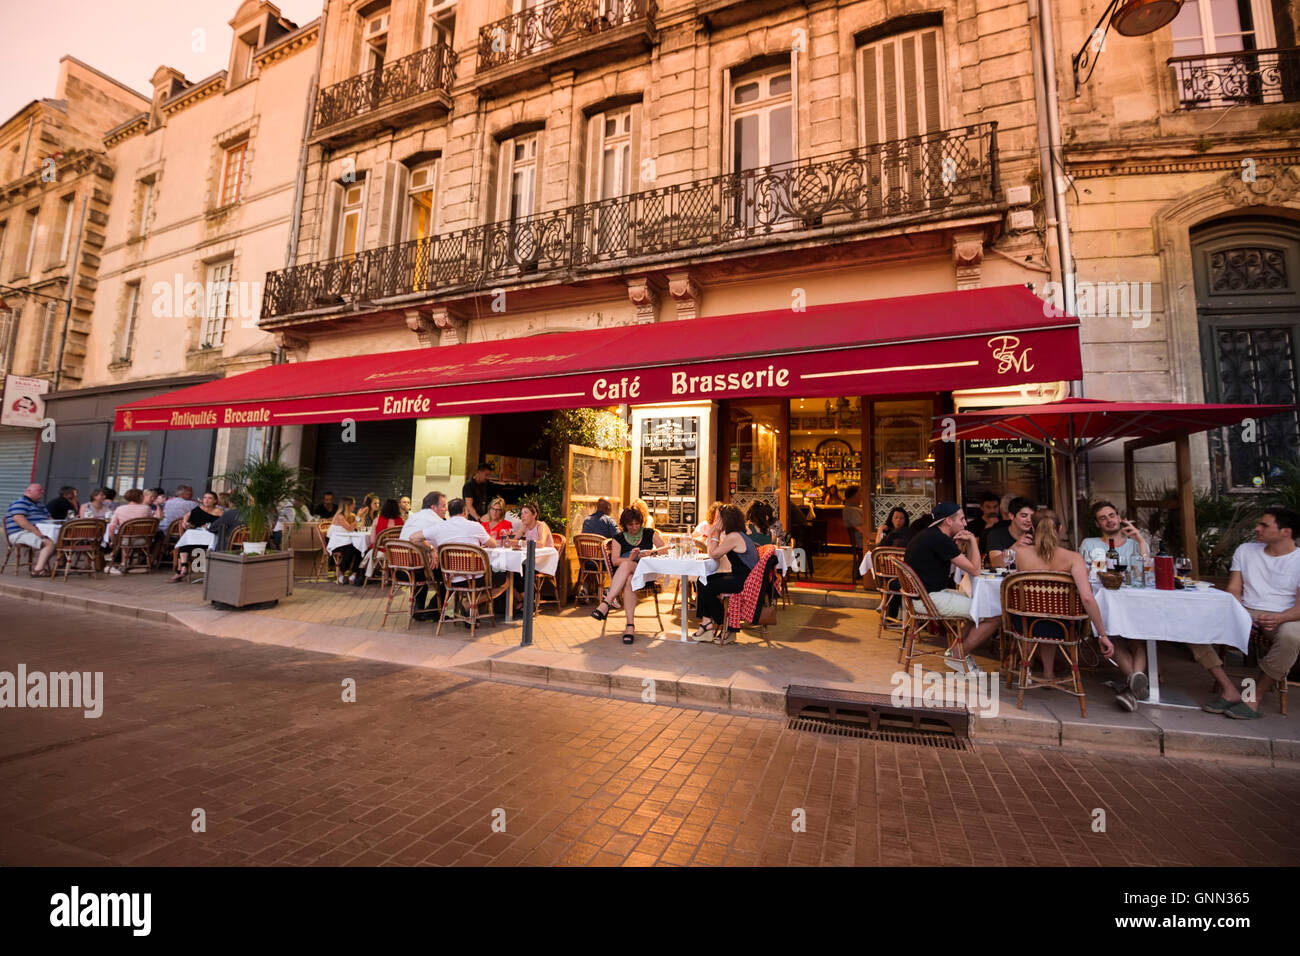 Restaurant Raclette Bordeaux France Restaurant Menu Stock Photos France Restaurant Menu Stock